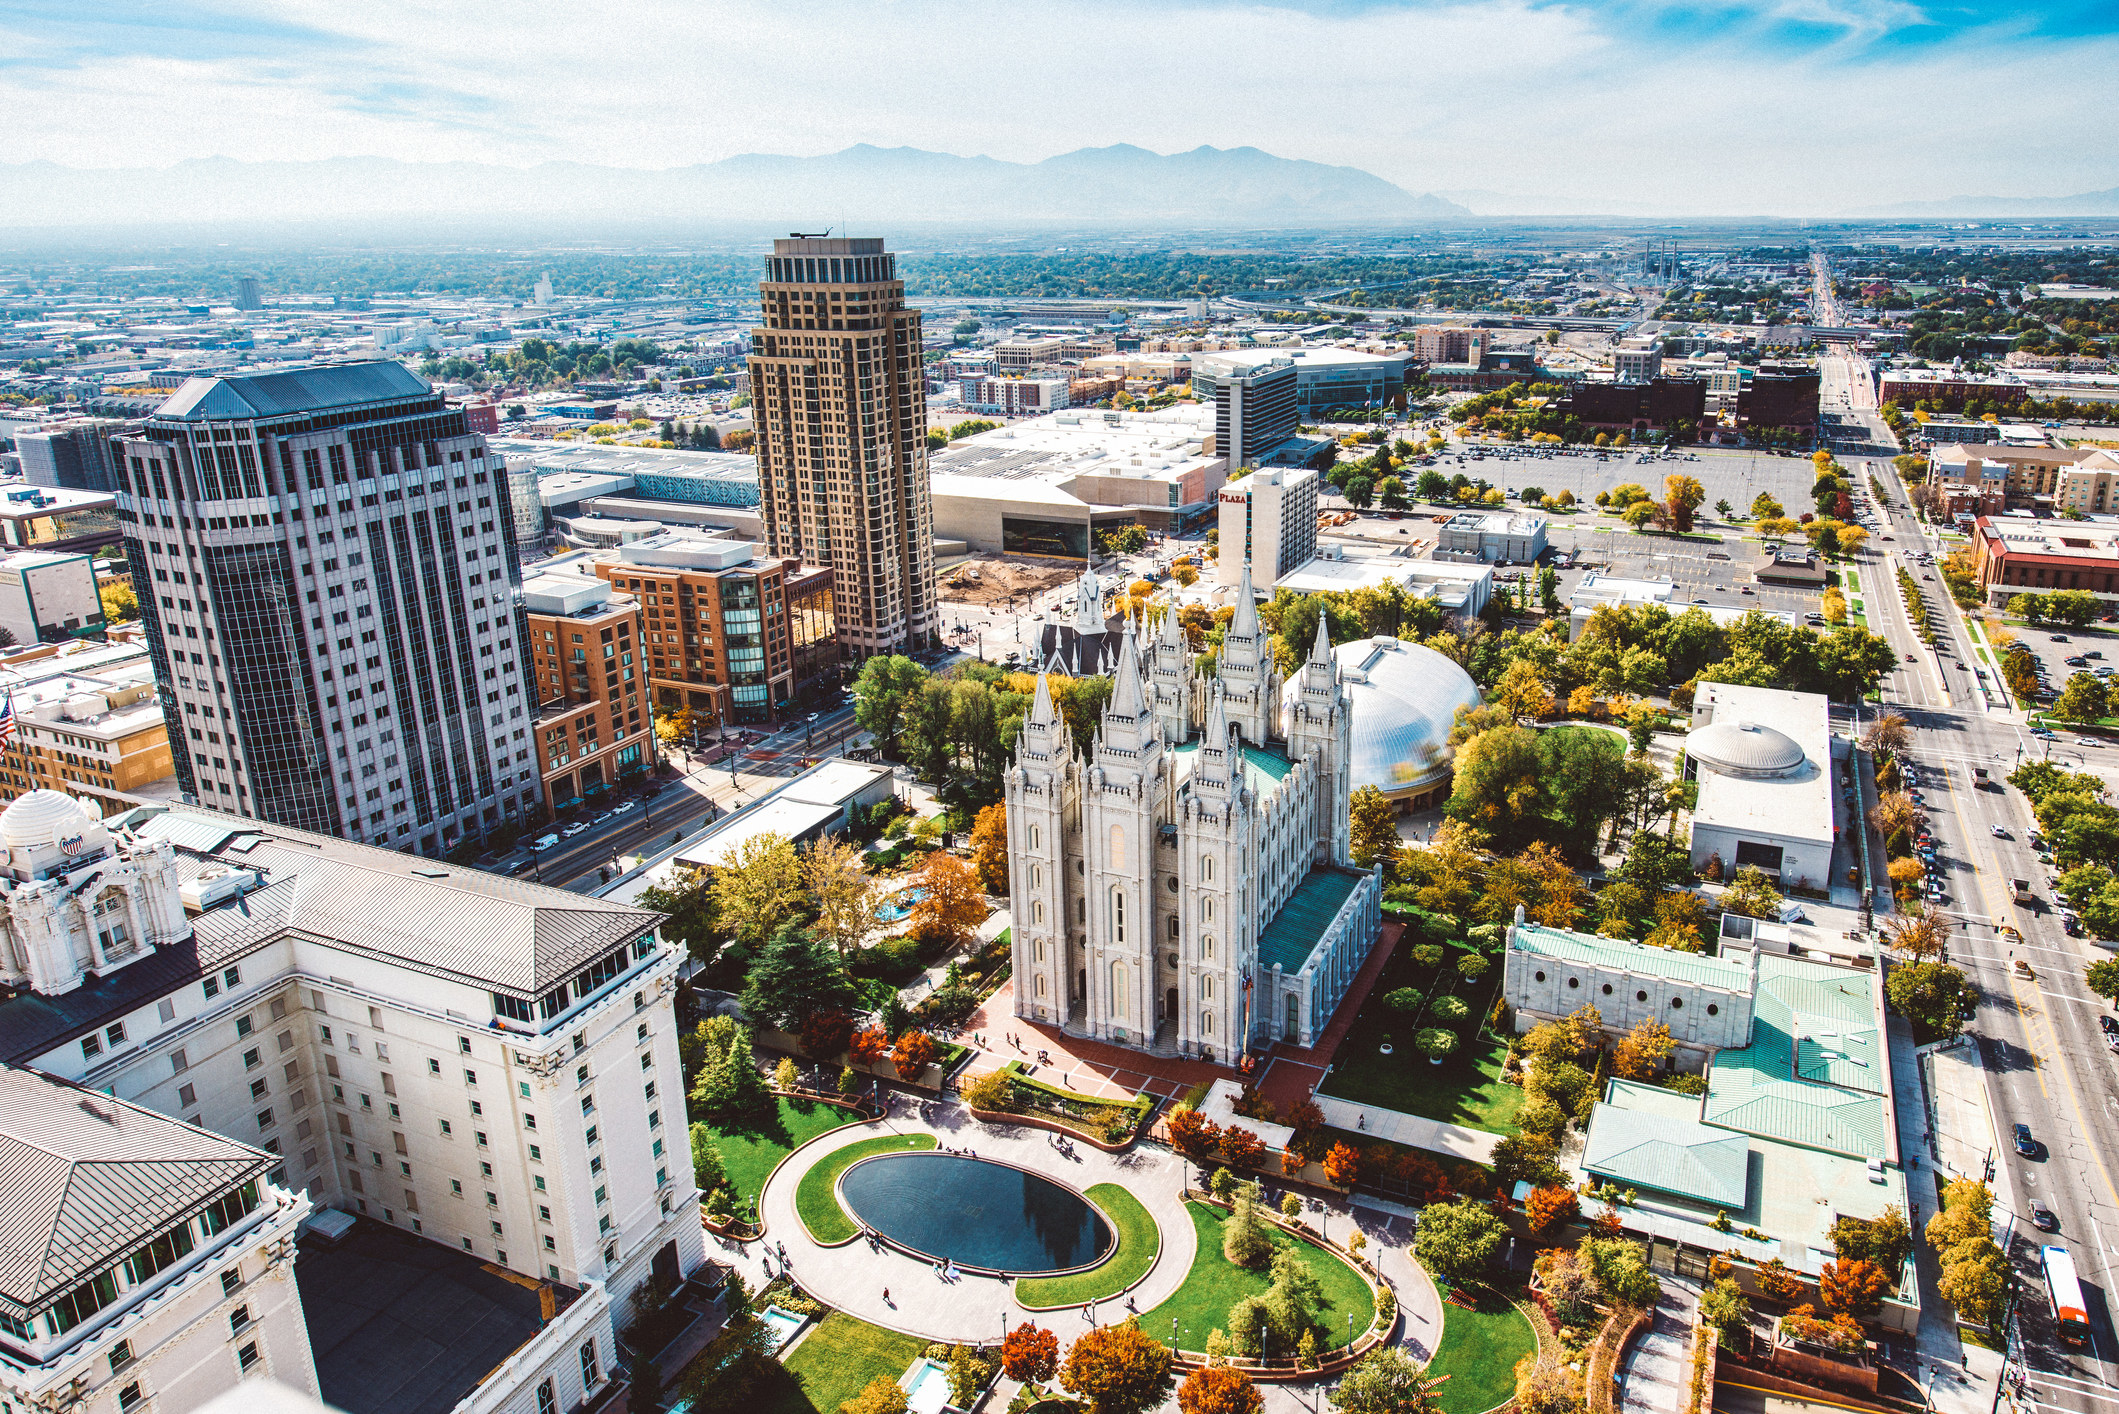 A view of Salt Lake City